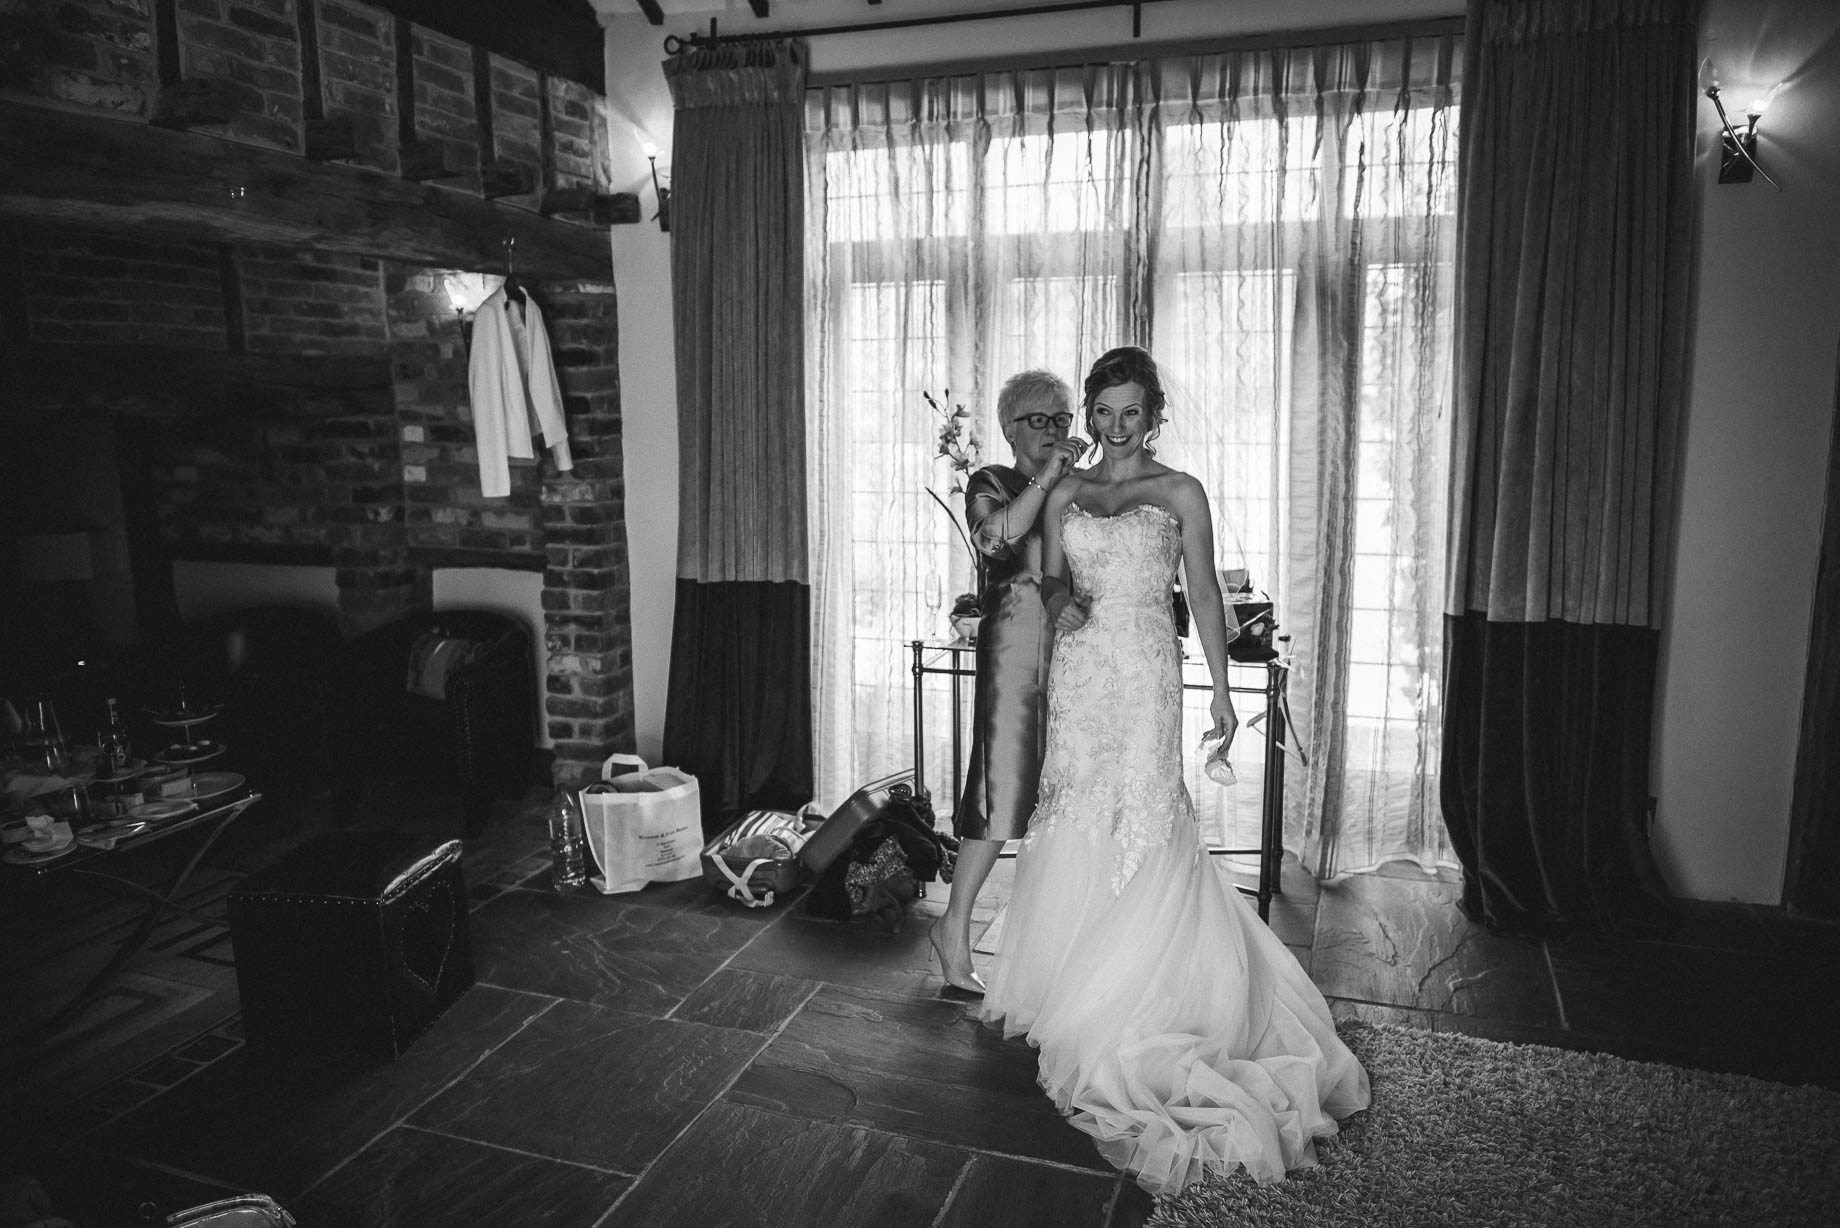 Rivervale Barn wedding photography by Guy Collier - Claire and Simon (37 of 133)